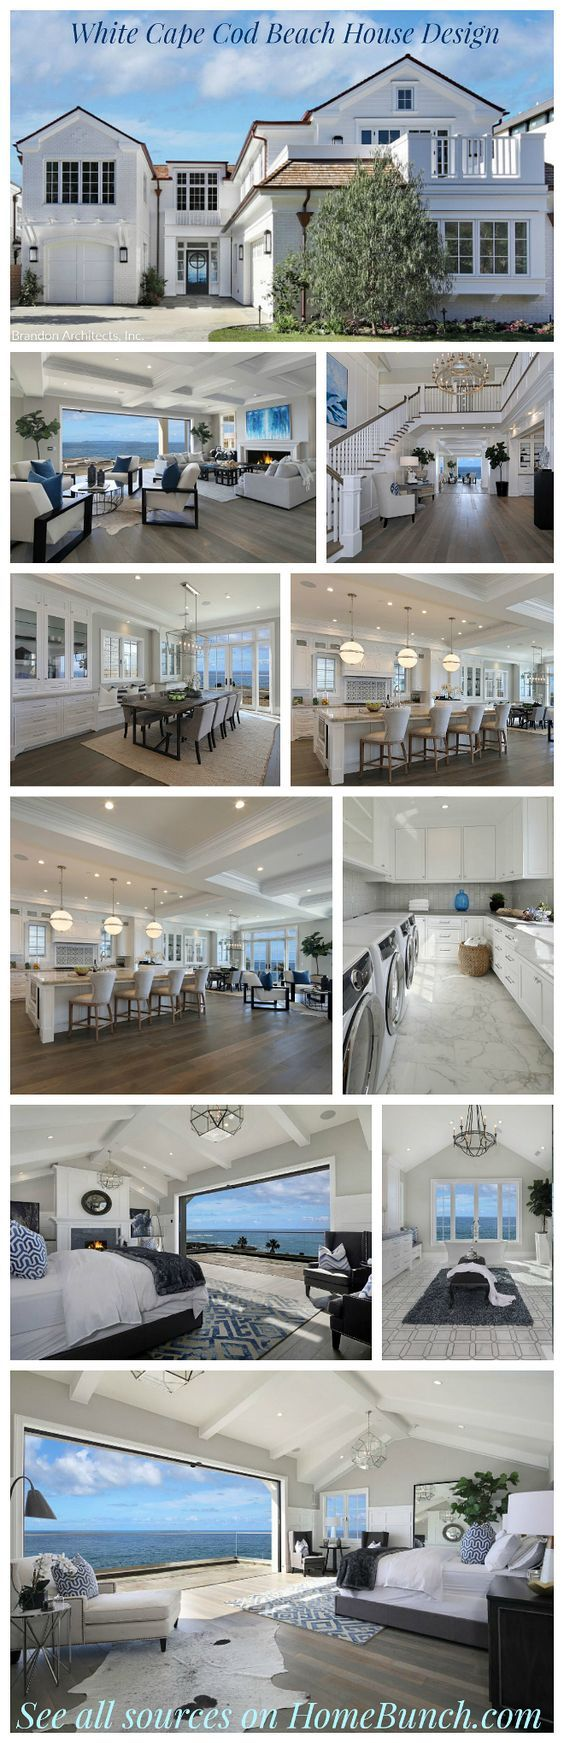 white cape cod beach house design see all sources and complete house tour on home - Complete House Design